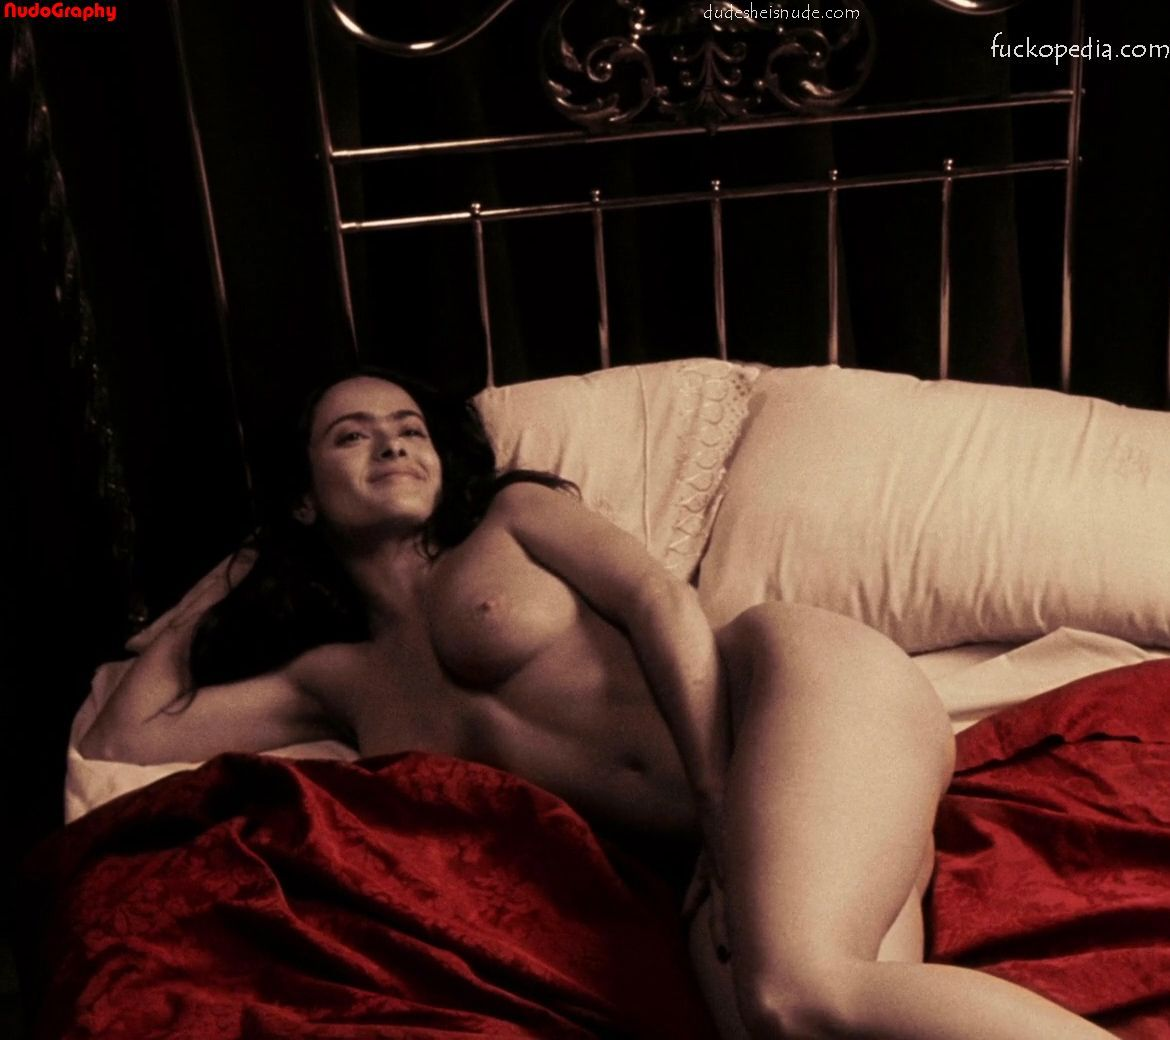 Salma Hayek Nude is Just Too Awesome 59 PICS